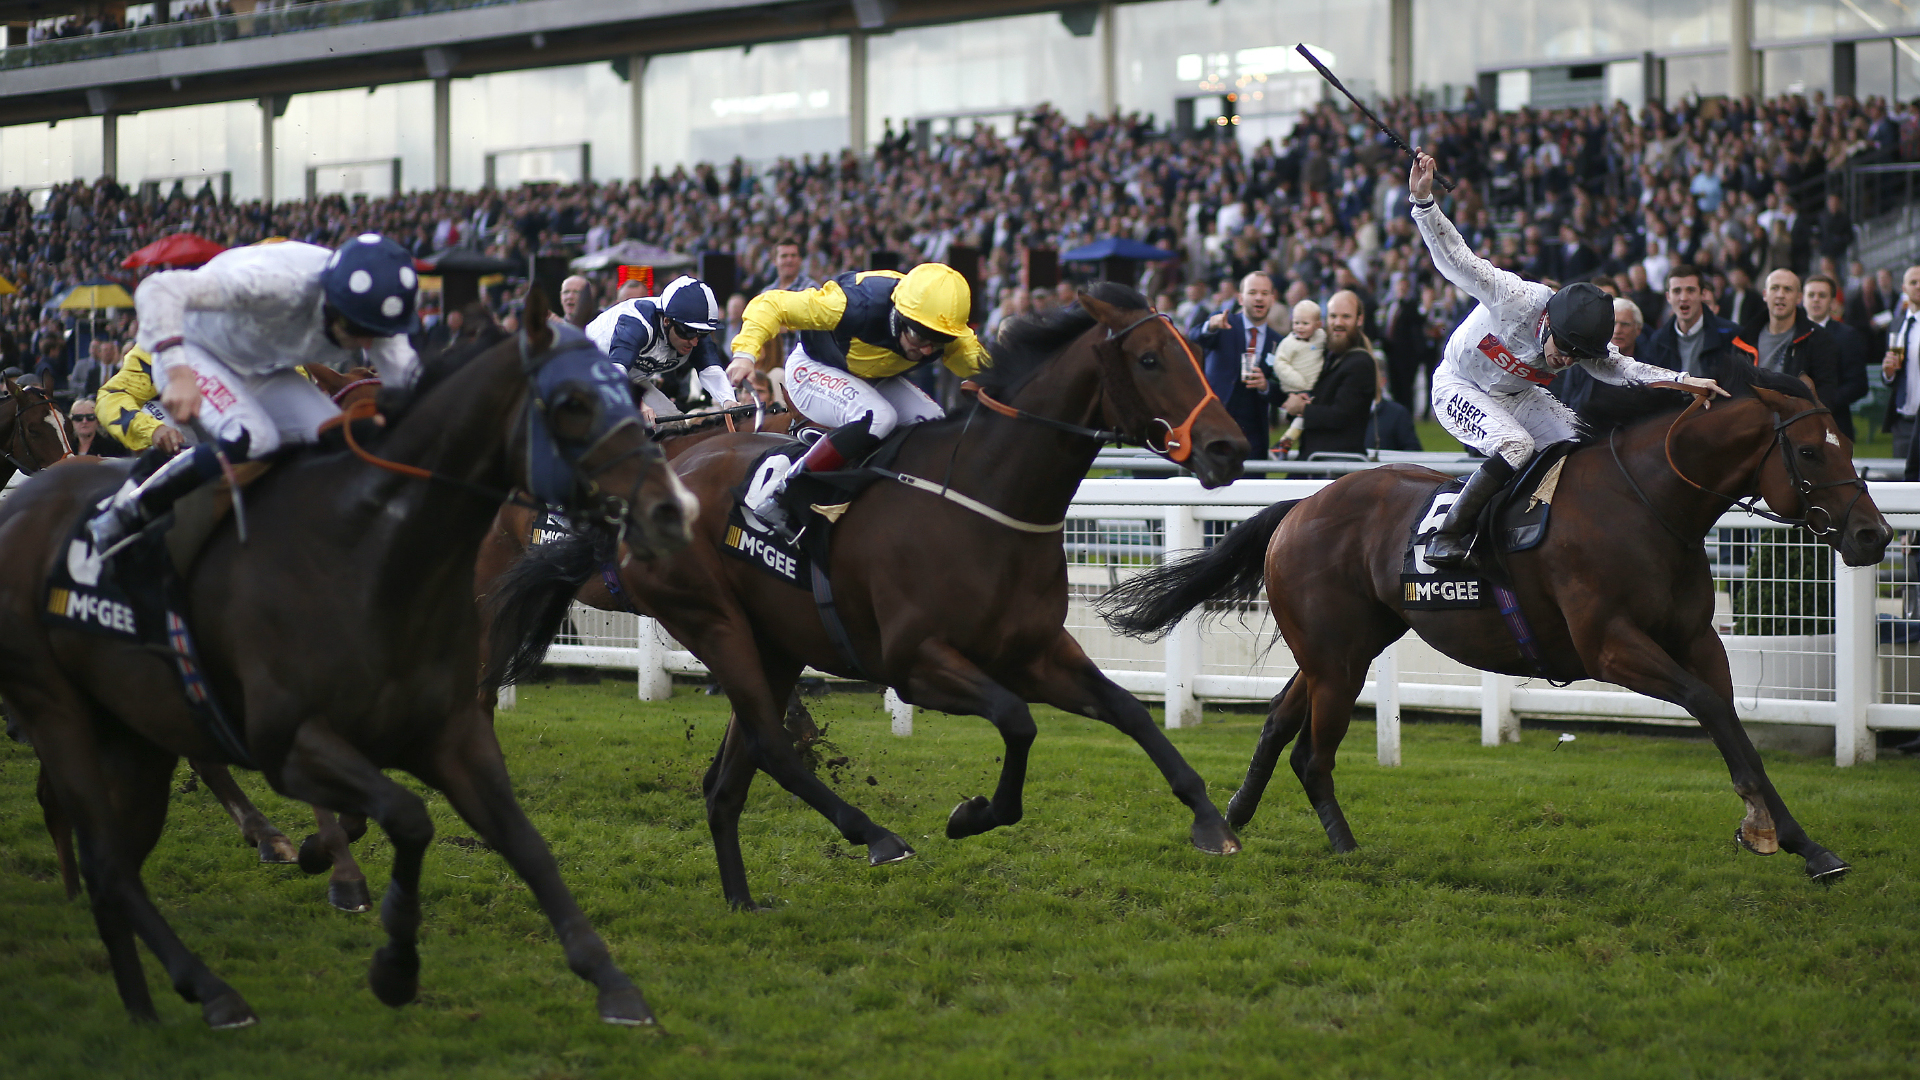 A still image of racing from Royal Ascot.